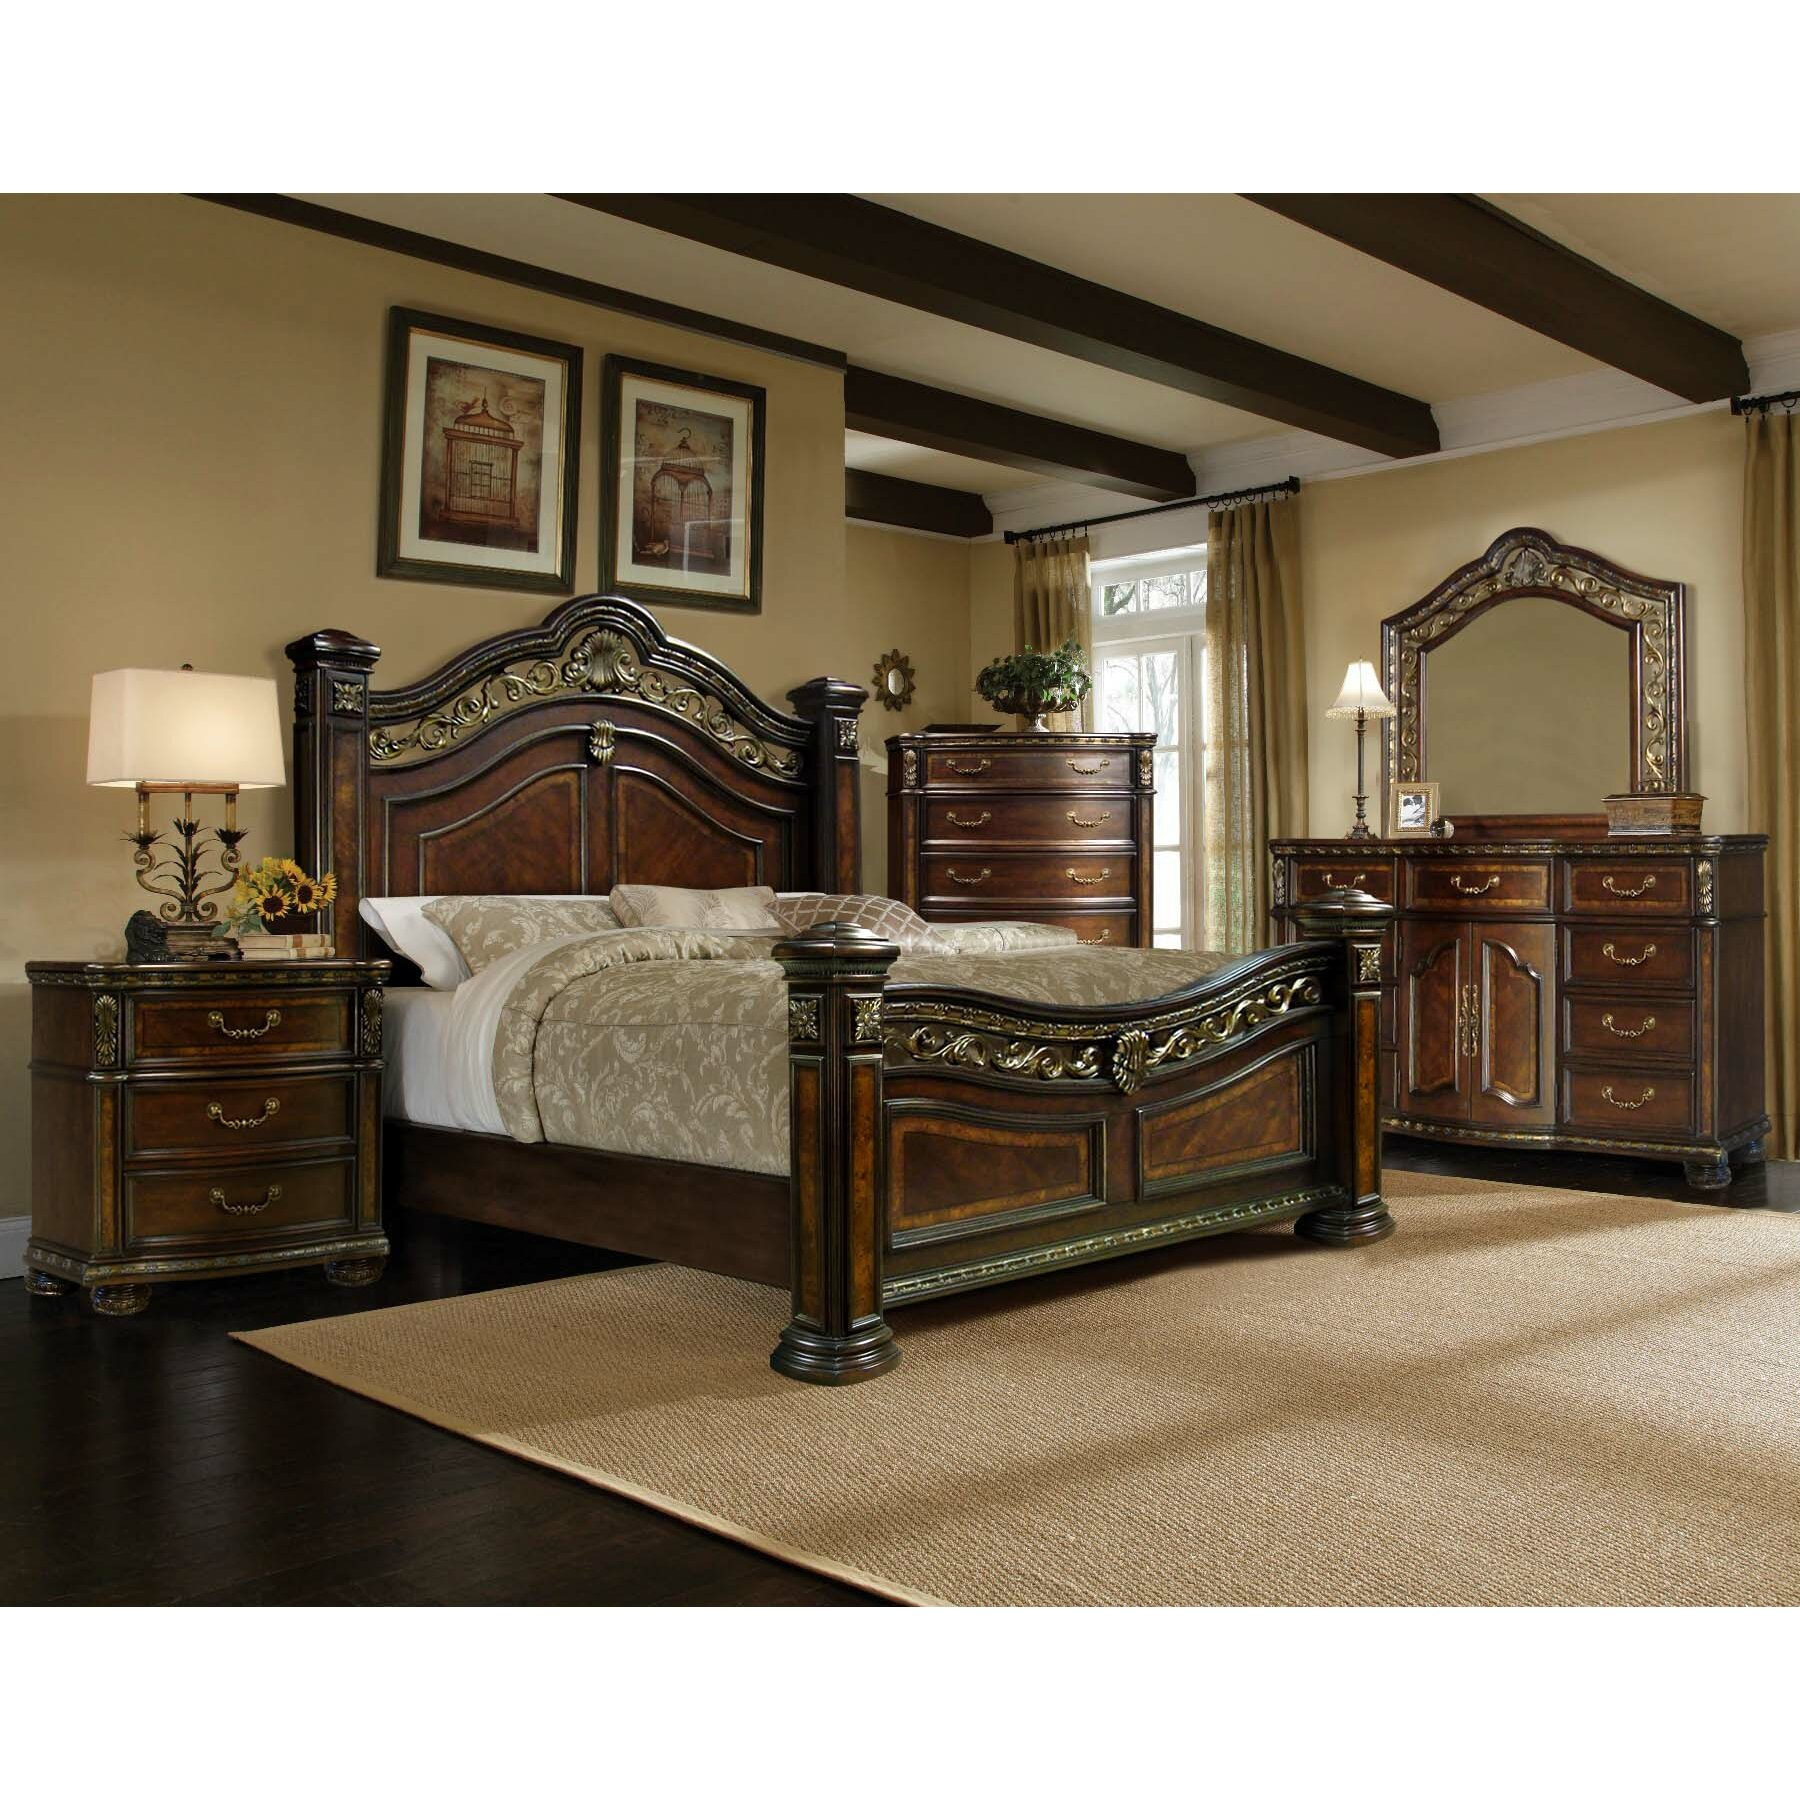 Old World Bedroom Furniture Ultimate Accents Old World 5 Pc Bedroom Set Wayfair